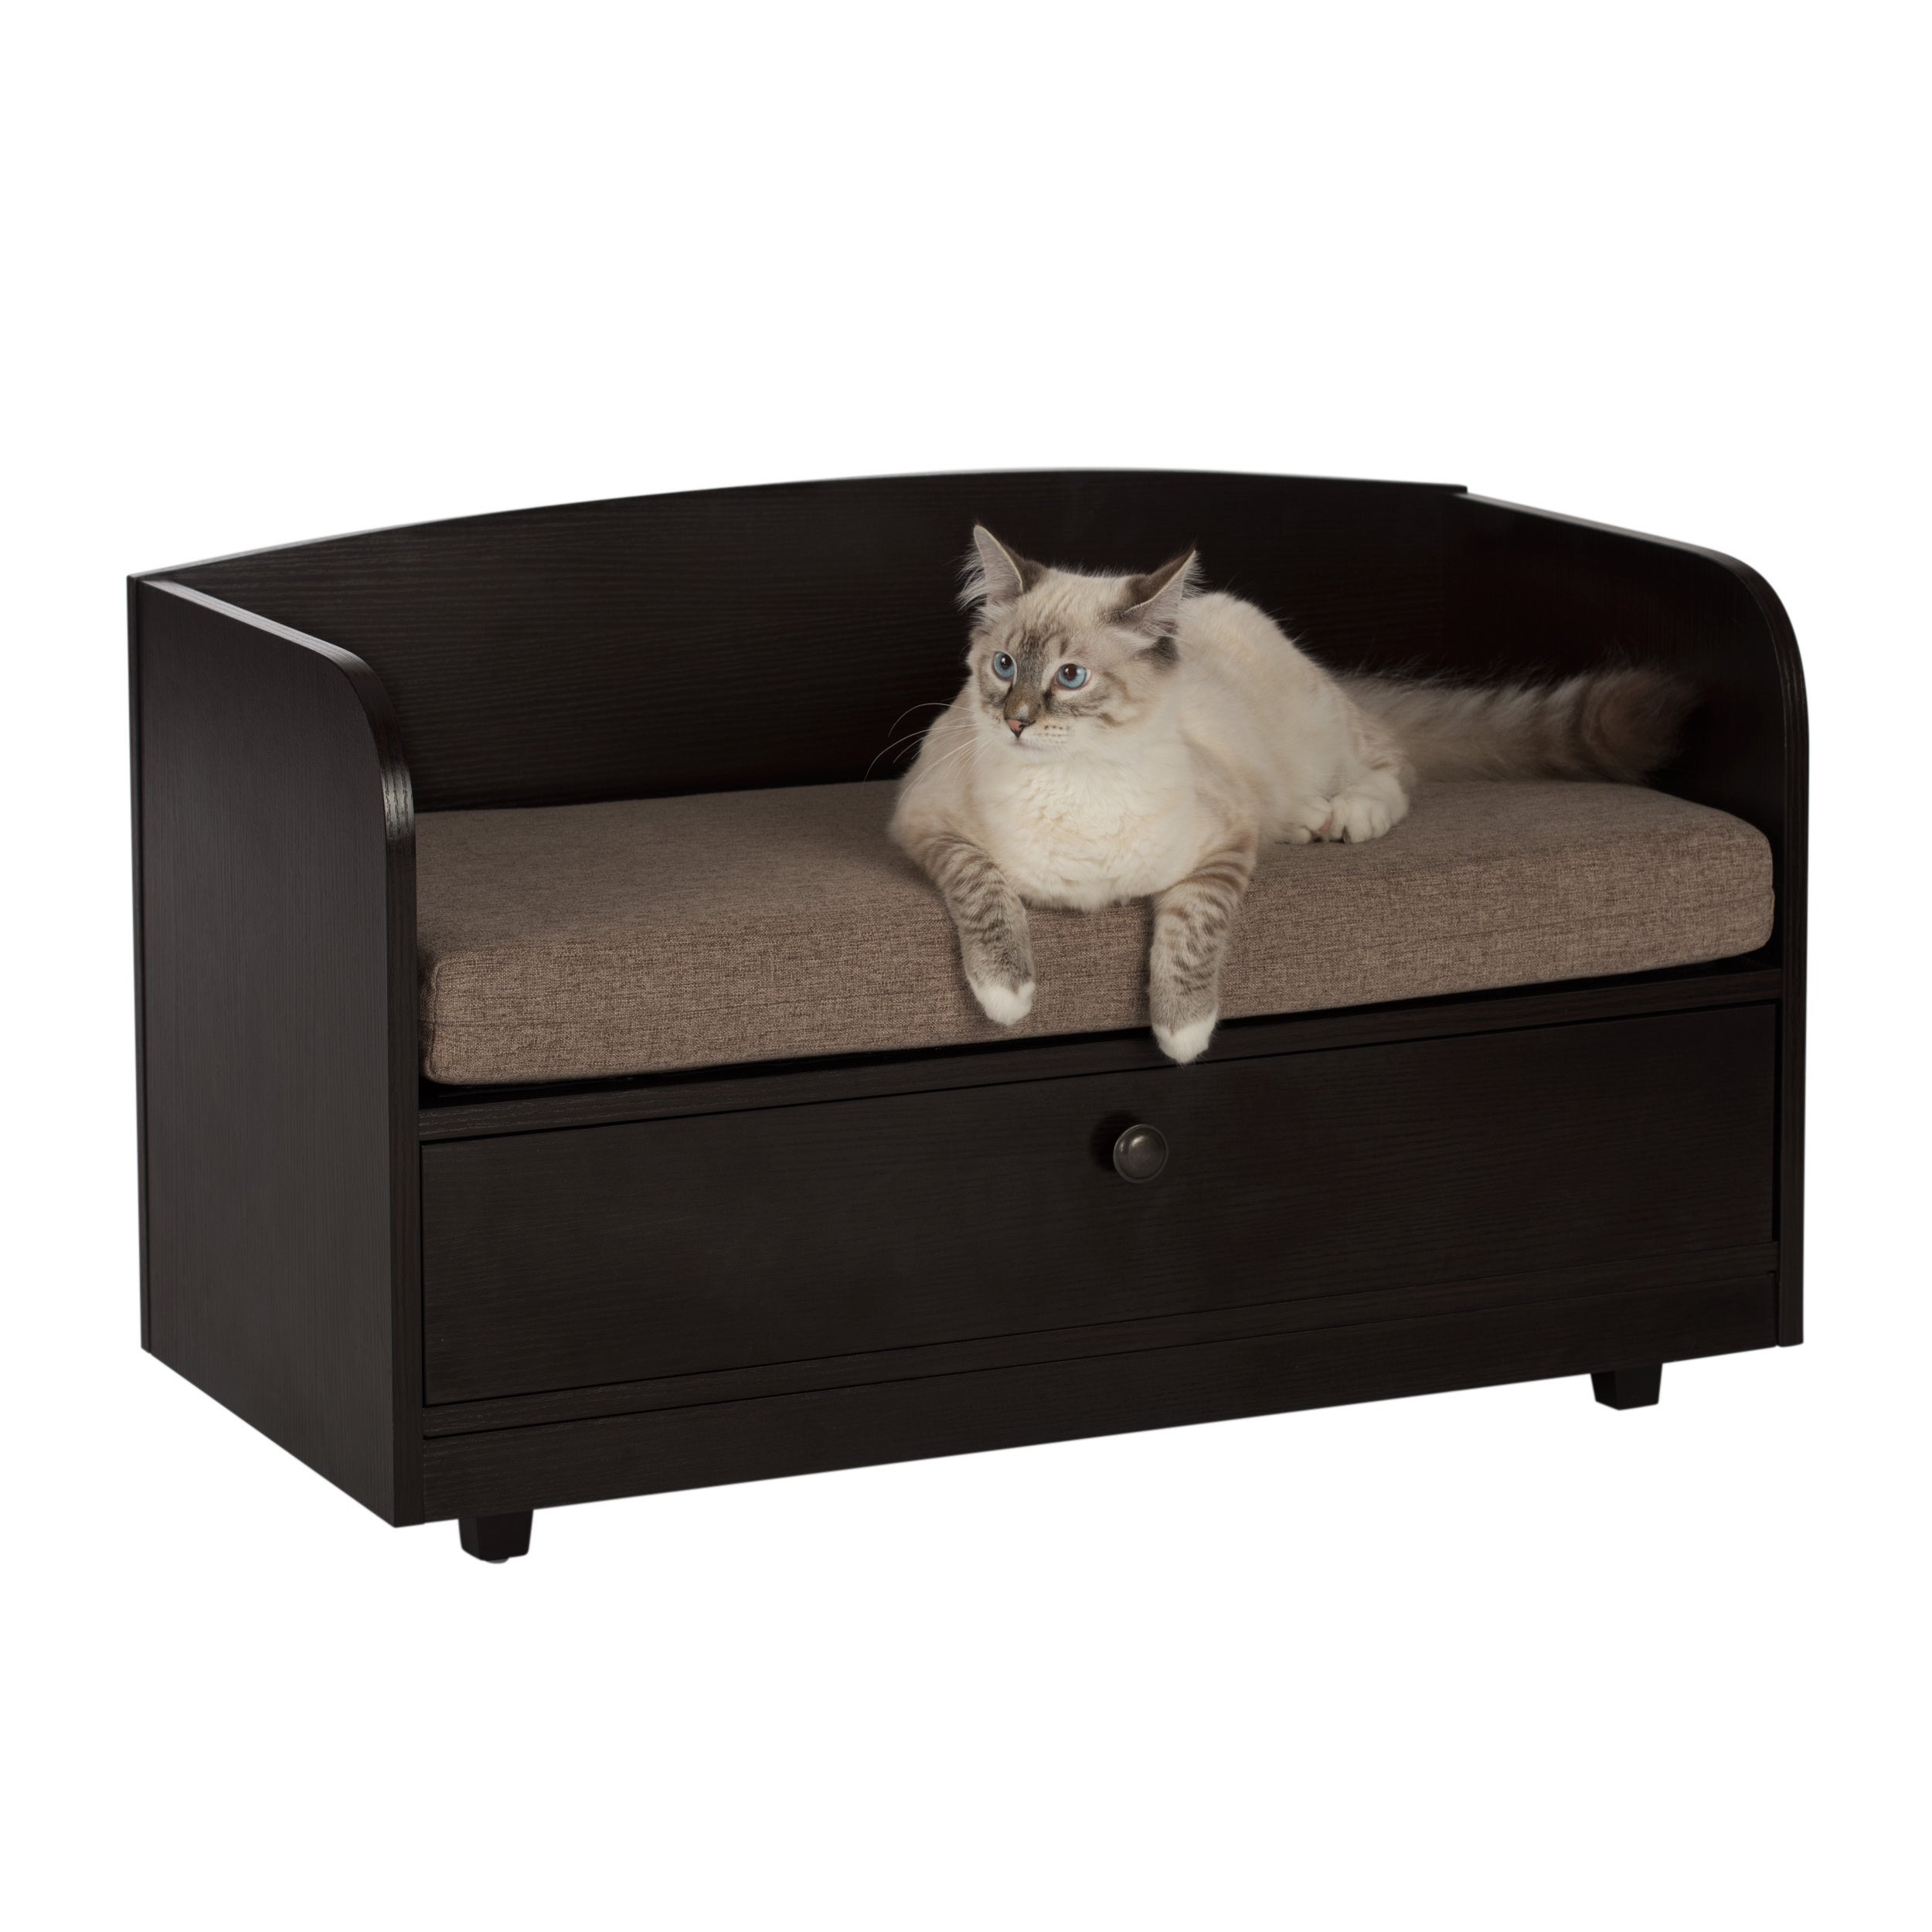 Shop Studio Designs Paws U0026 Purrs Pet Bed With Storage Drawer   Free  Shipping Today   Overstock.com   15050473